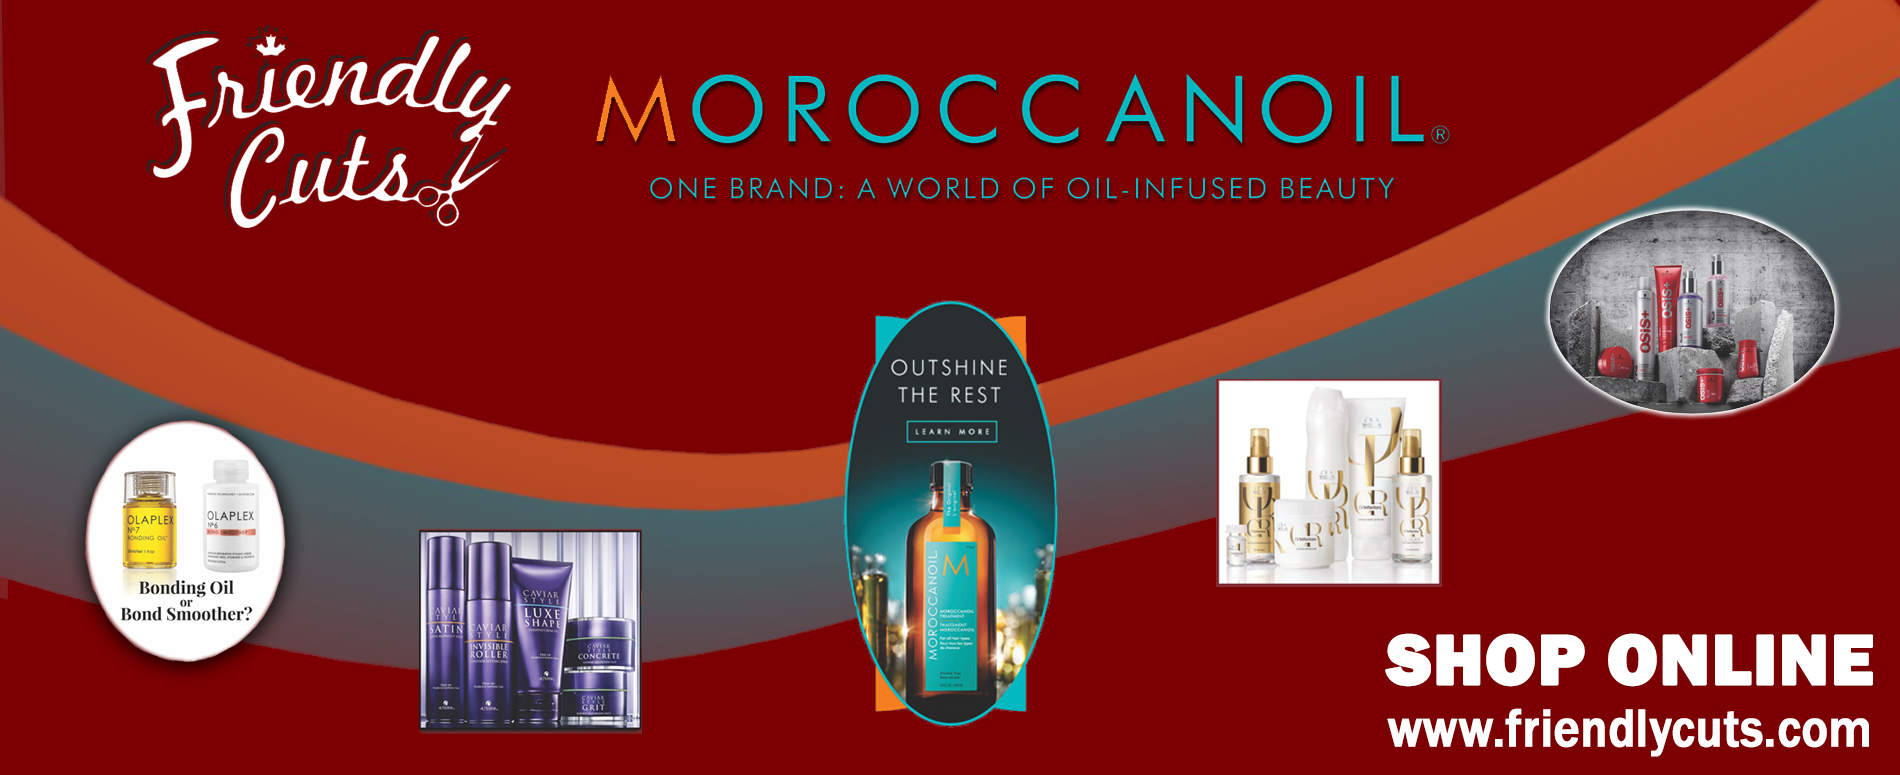 Moroccanoil at Friendly Cuts